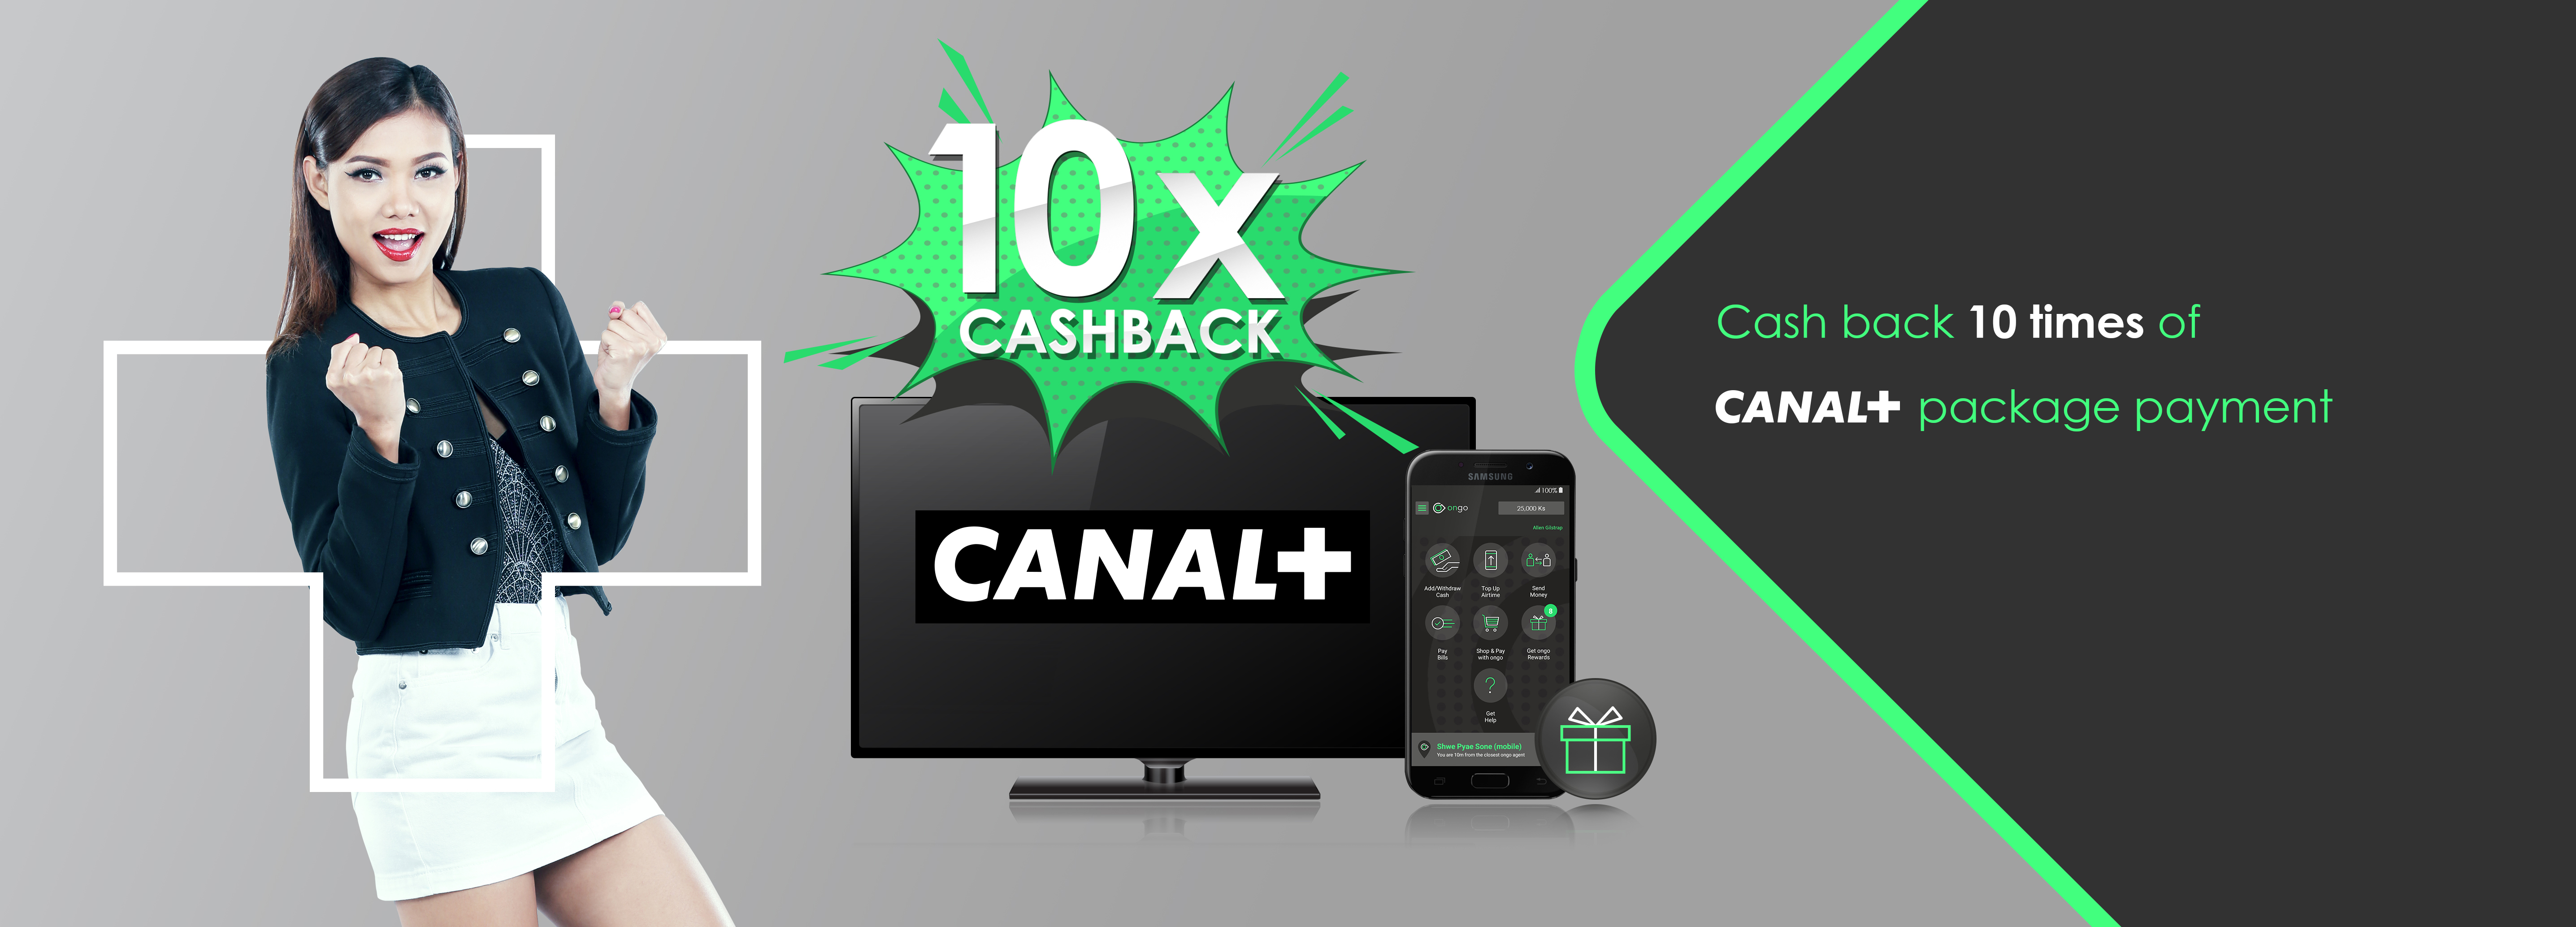 Ongo_Canal+_SMS_WebLink_Banner_English(1)